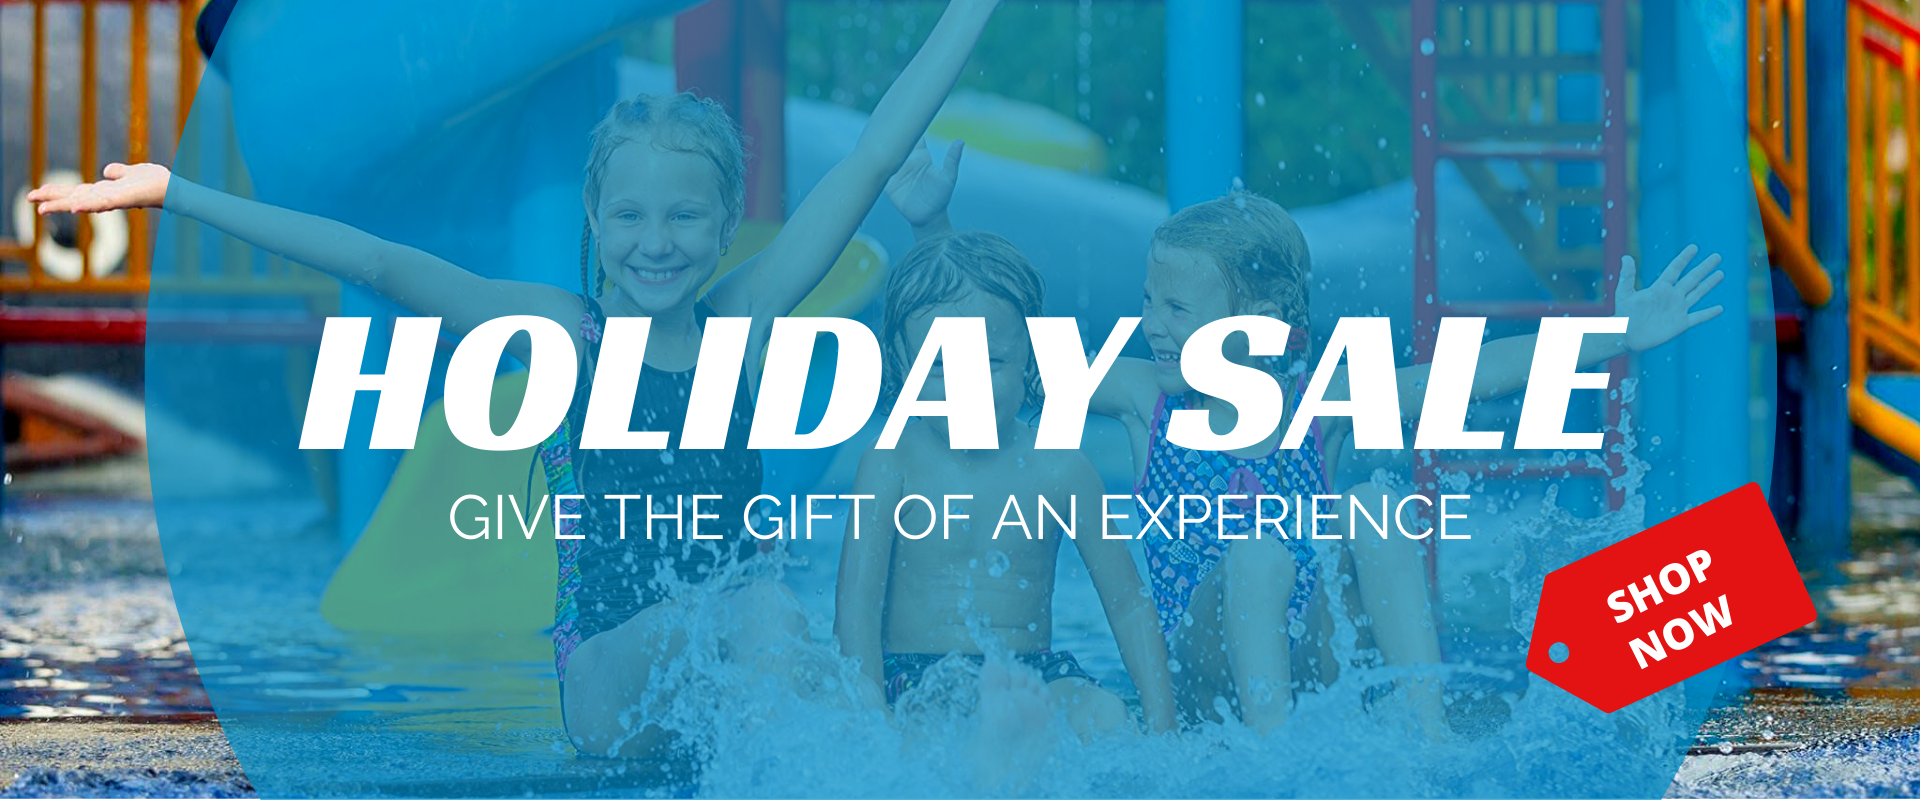 WTWP Holiday Sale